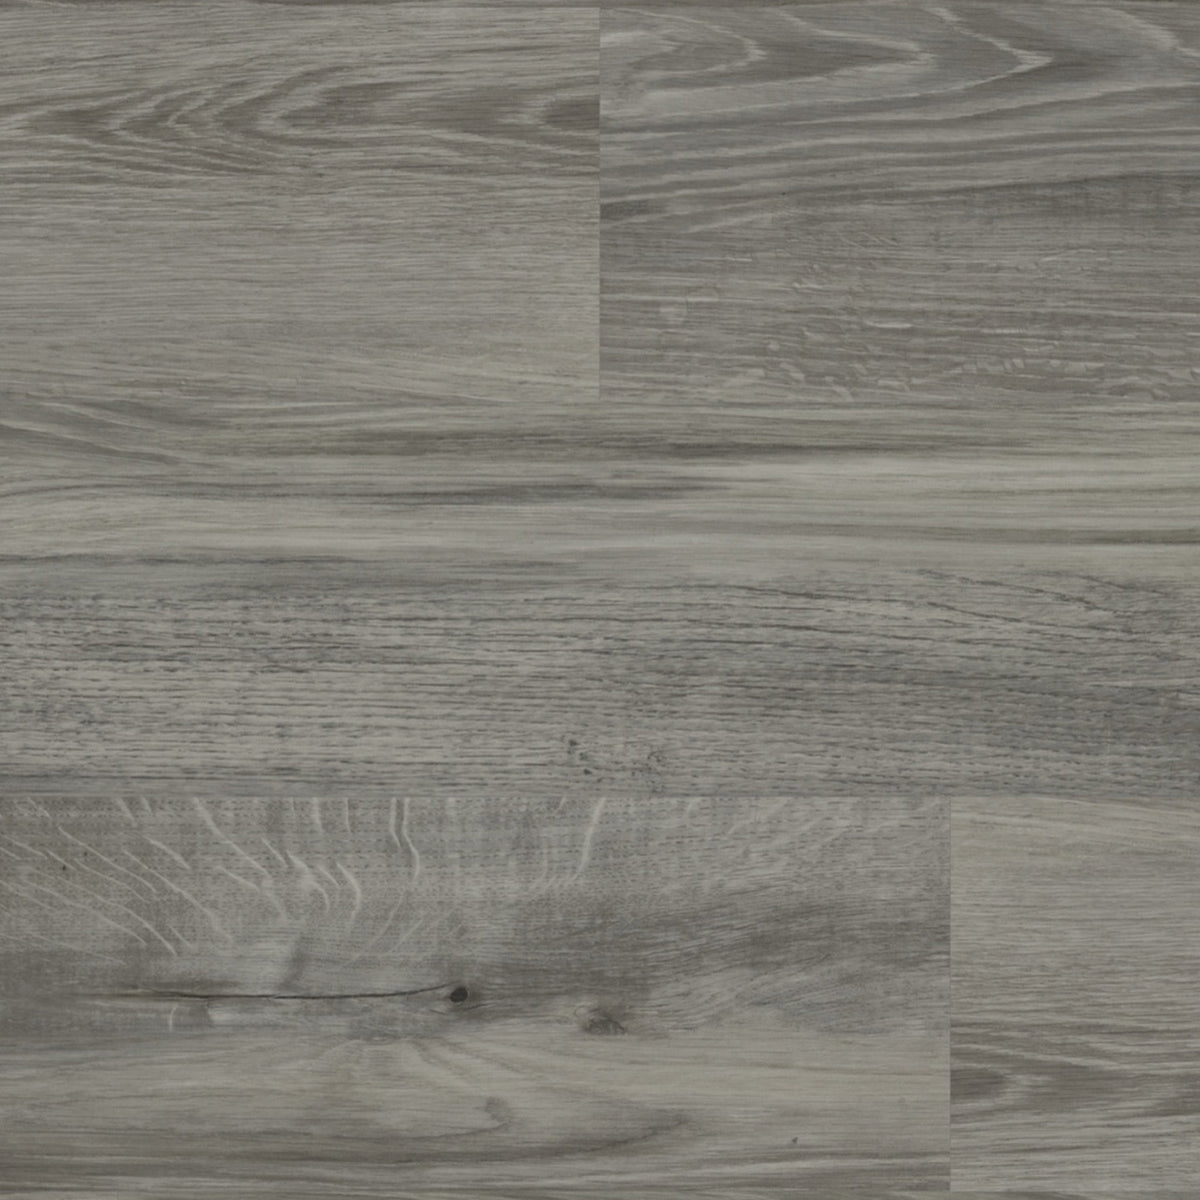 Karndean Korlok Reserve 48 in. x 7 in. Luxury Vinyl Tile - Grey Oiled Oak